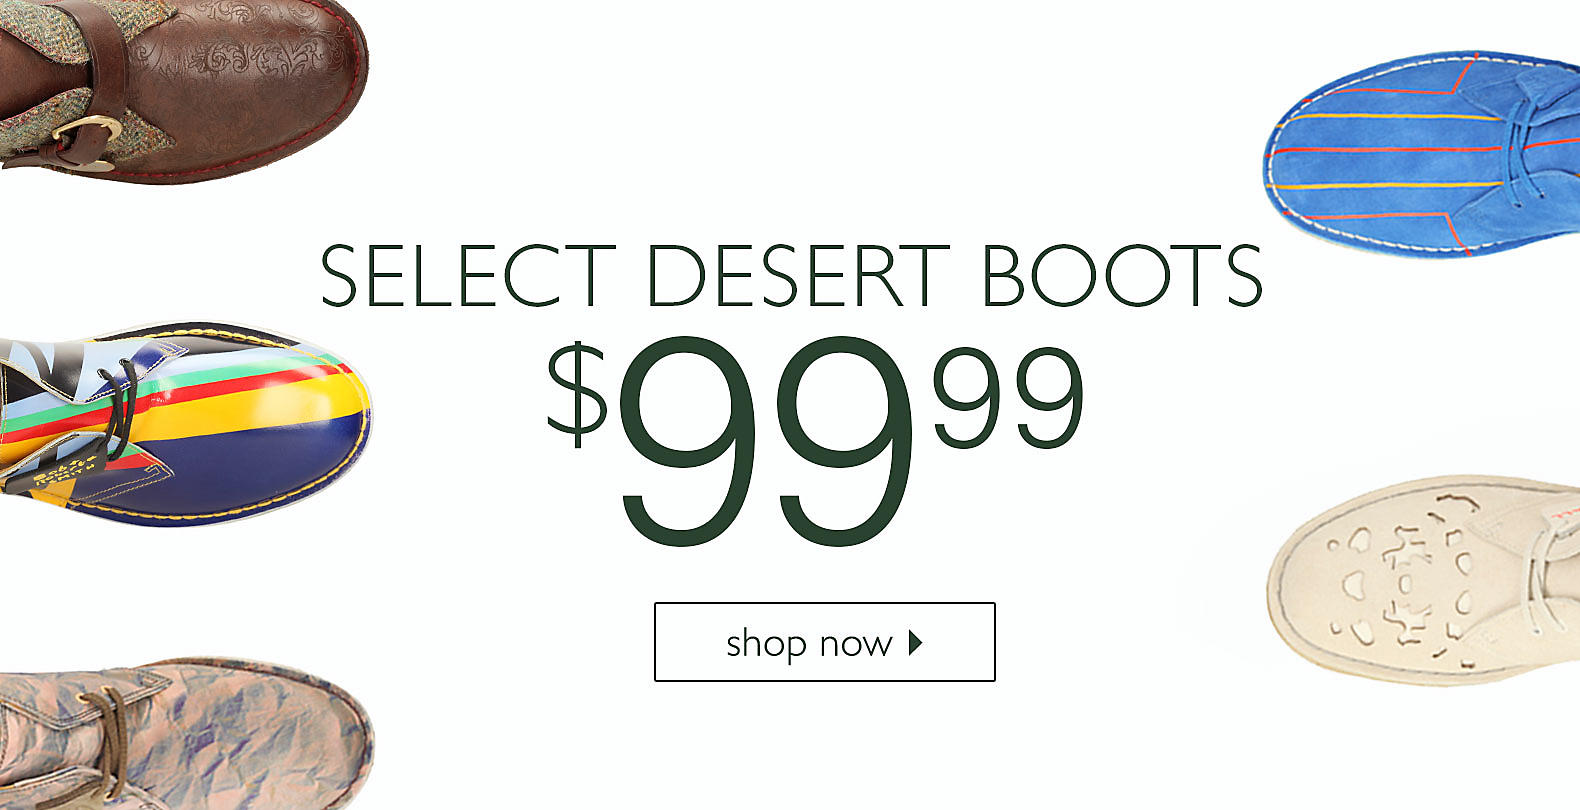 Shop Select Desert Boots for $99.99